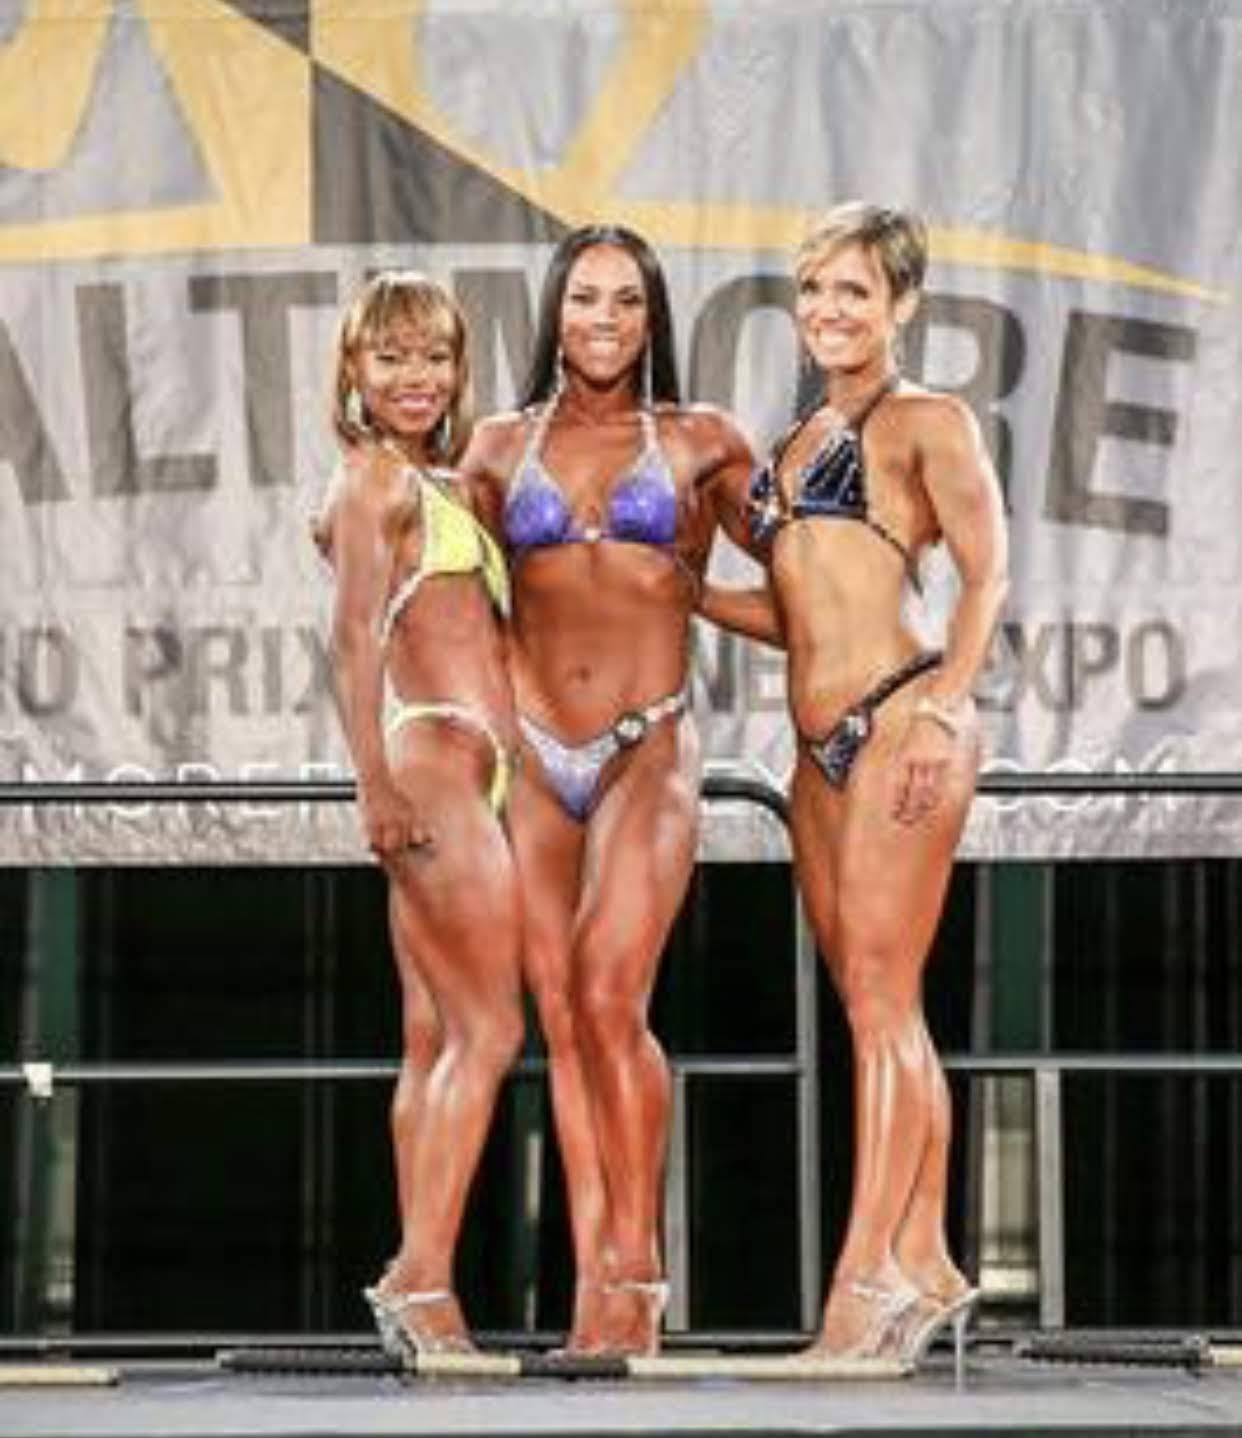 I took 3rd and 4th place at my first bodybuilding competition.  (That's me on the right)